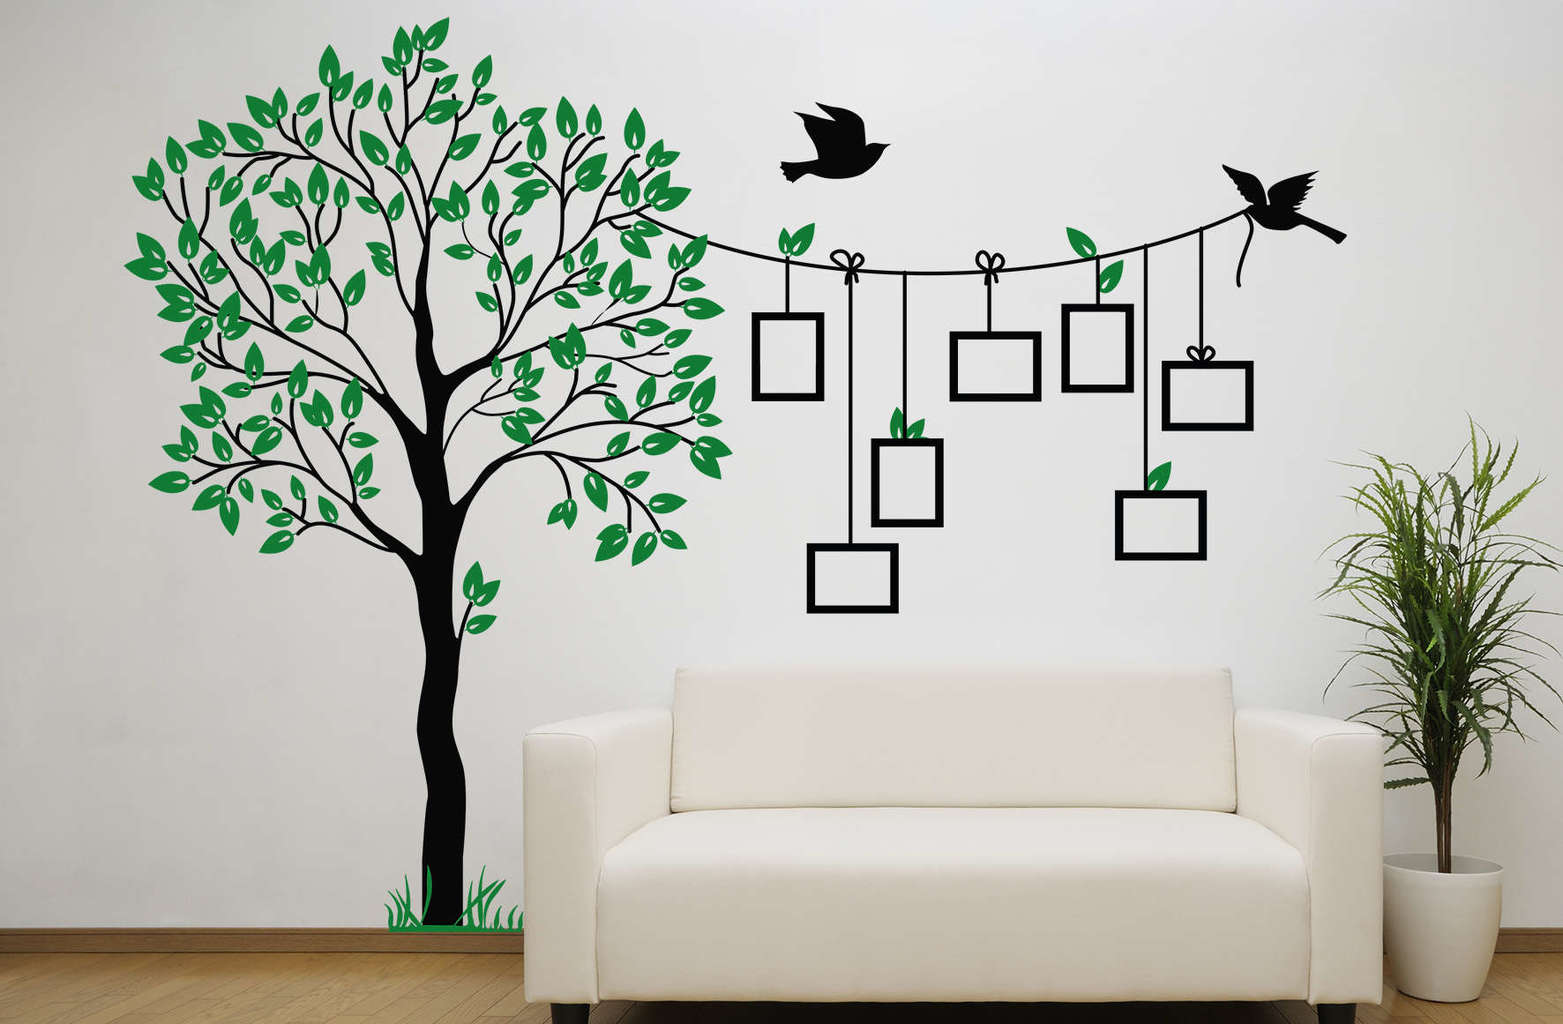 Bird Photo Frame Tree Wall Decal Sticker Photo Tree Wall Decal